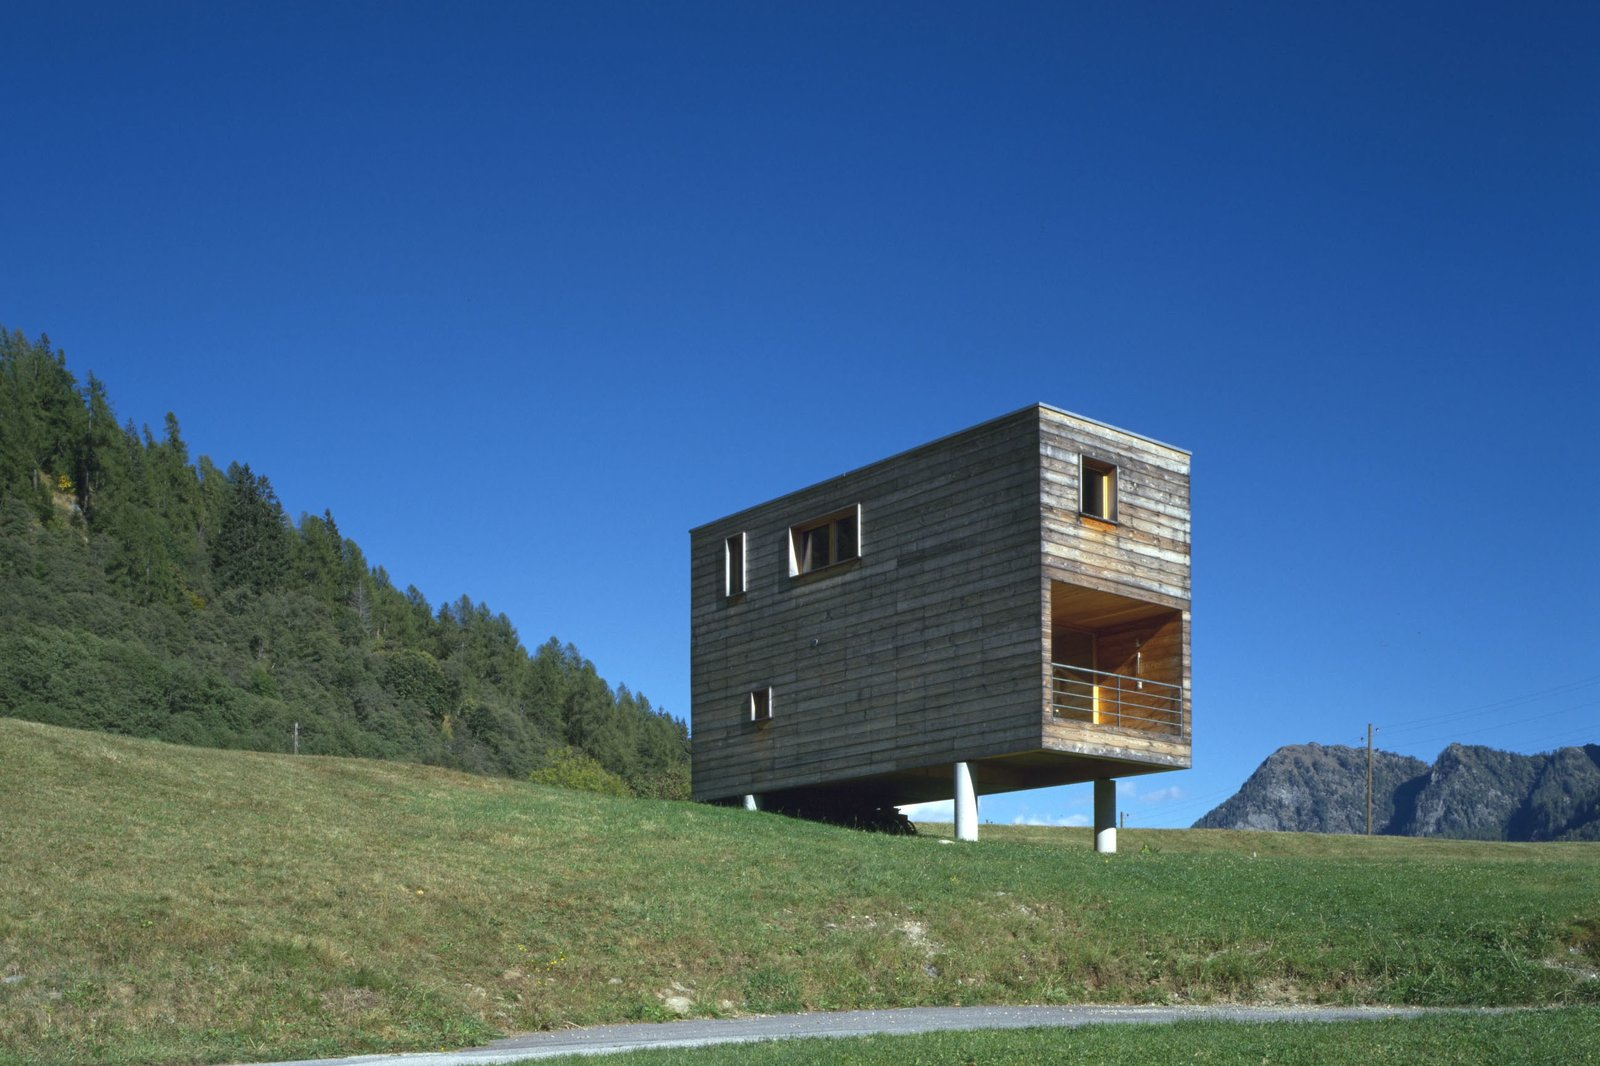 Cottage, Vallemaggia by Roberto Briccola   Off the grid from Small and Quiet